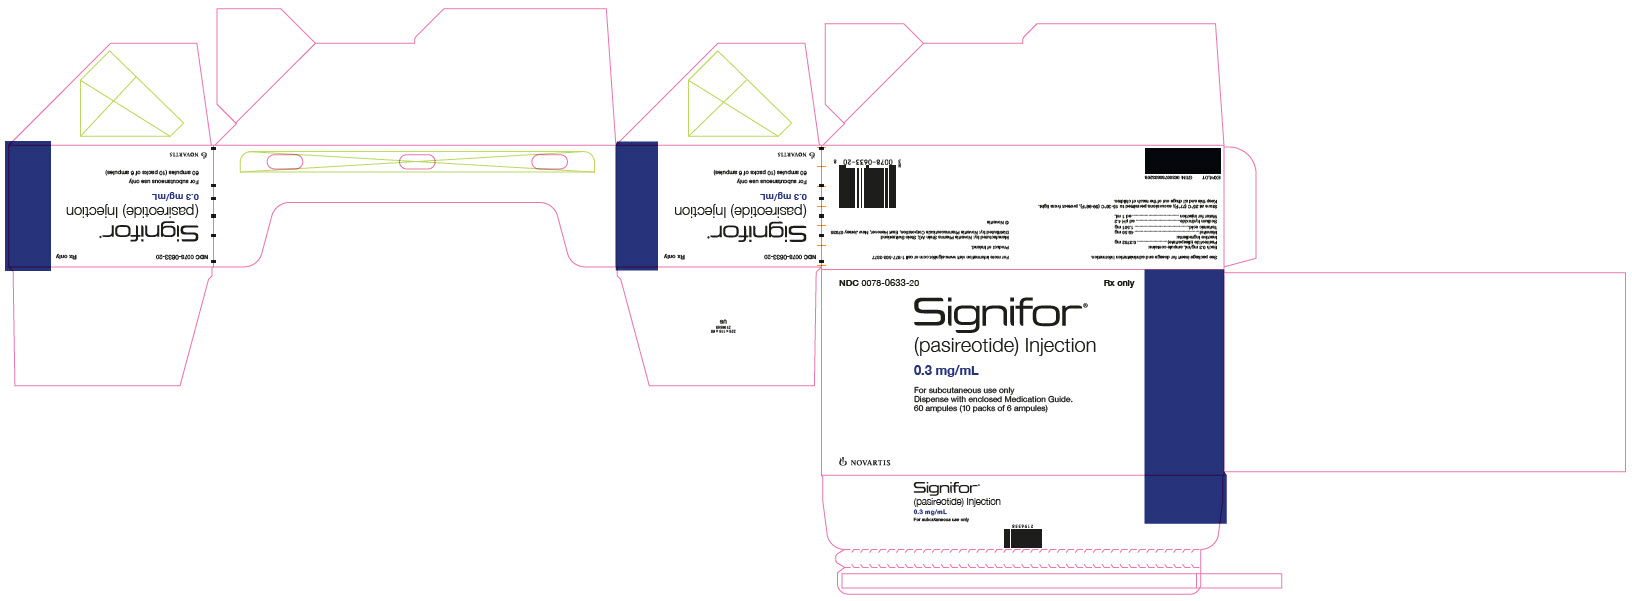 Package Label – 0.3 mg/mL Rx OnlyNDC: <a href=/NDC/0078-0633-20>0078-0633-20</a> Signifor®  (pasireotide) Injection 0.3 mg/mL For subcutaneous use only Dispense with enclosed Medication Guide. 60 ampules (10 packs of 6 ampules)